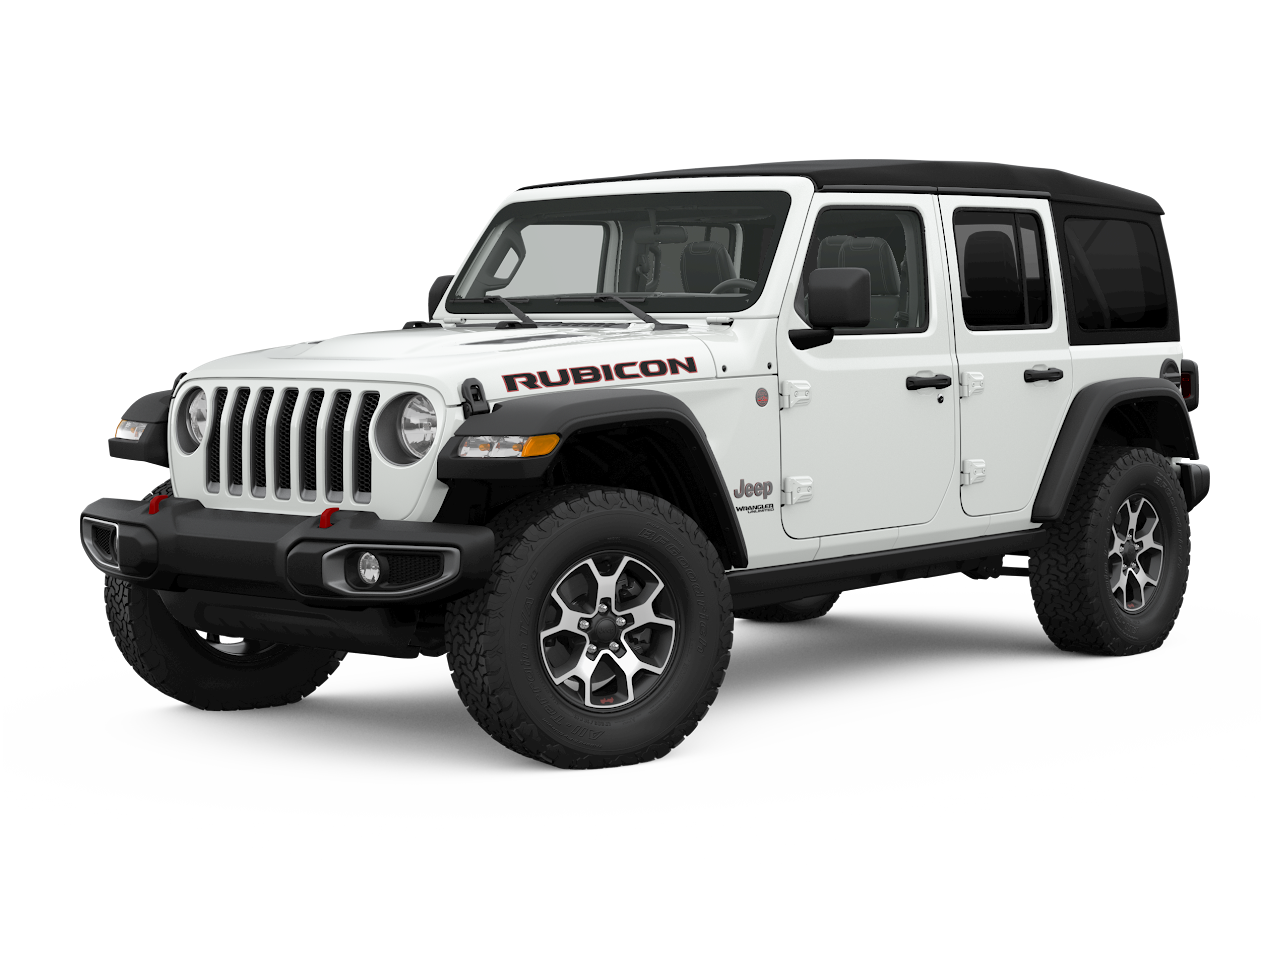 Differences Between 2018 Wrangler JK & 2018 Wrangler JL